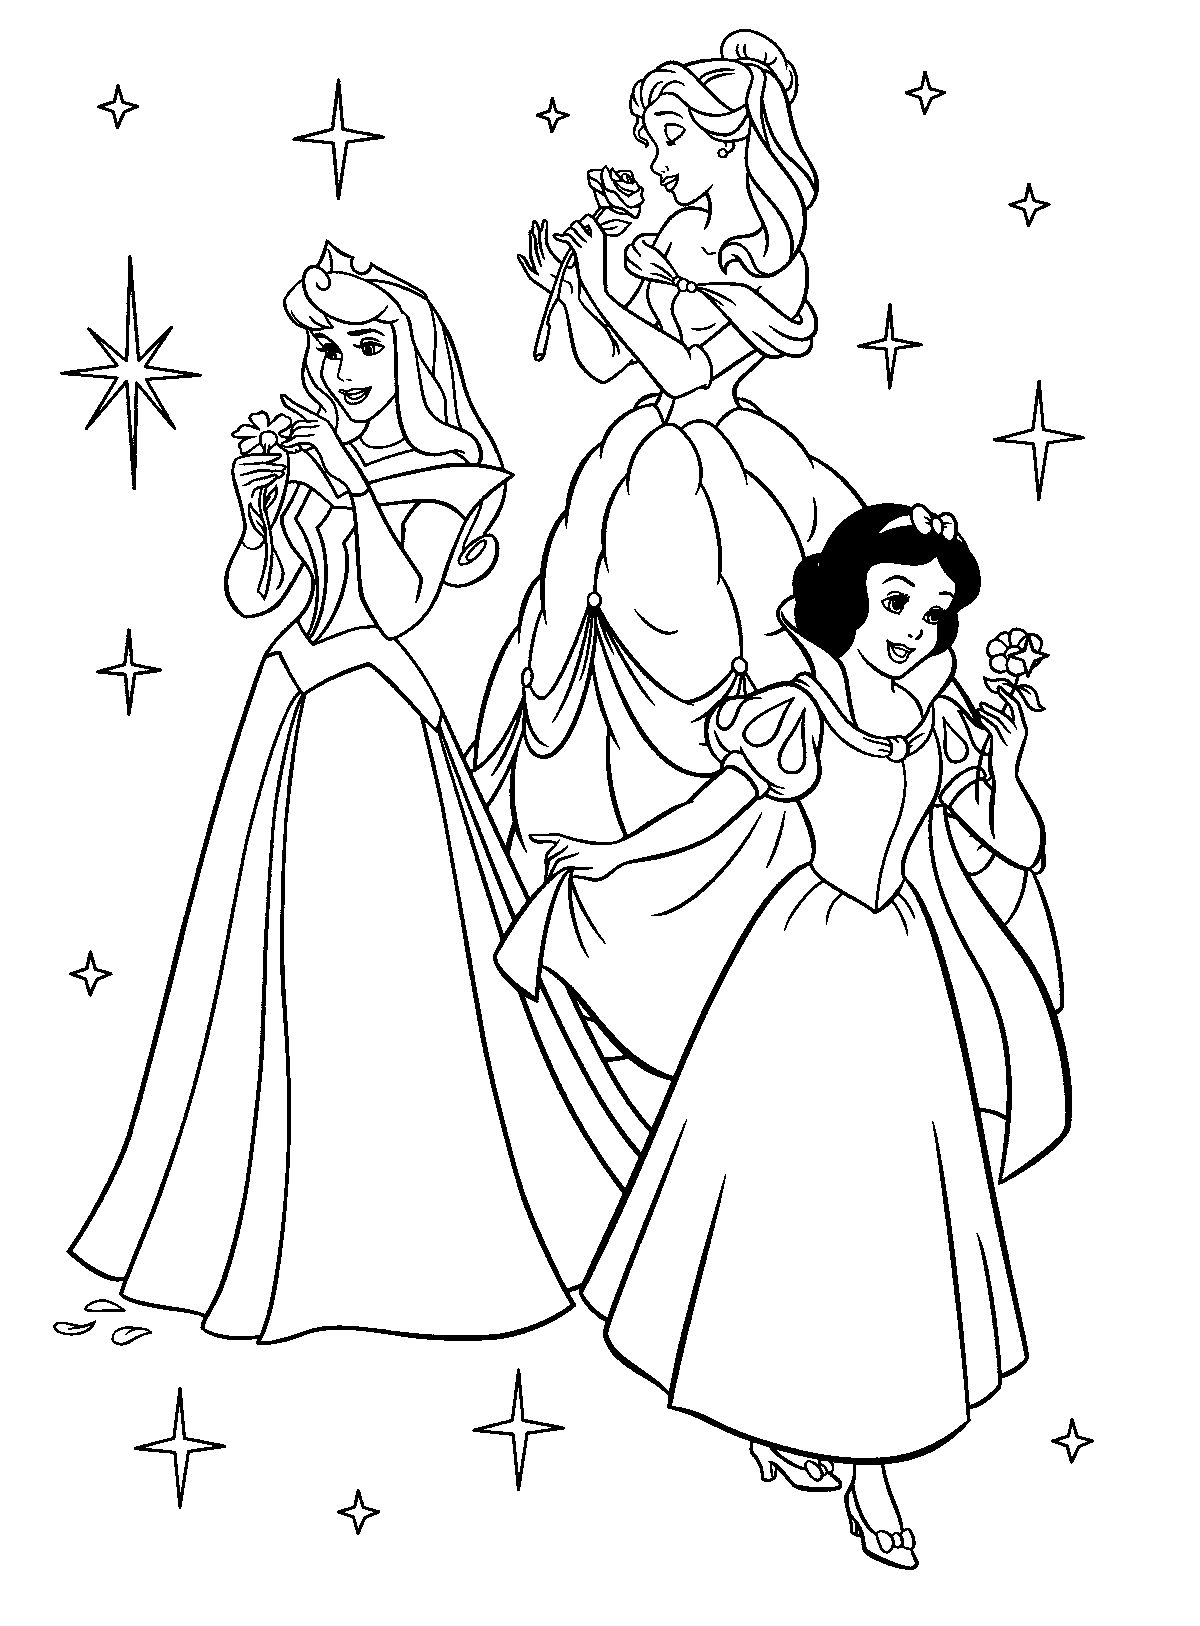 disneyfrozencoloringpages disney princess coloring pages to print - Free Printable Coloring Pages Of Elsa From Frozen